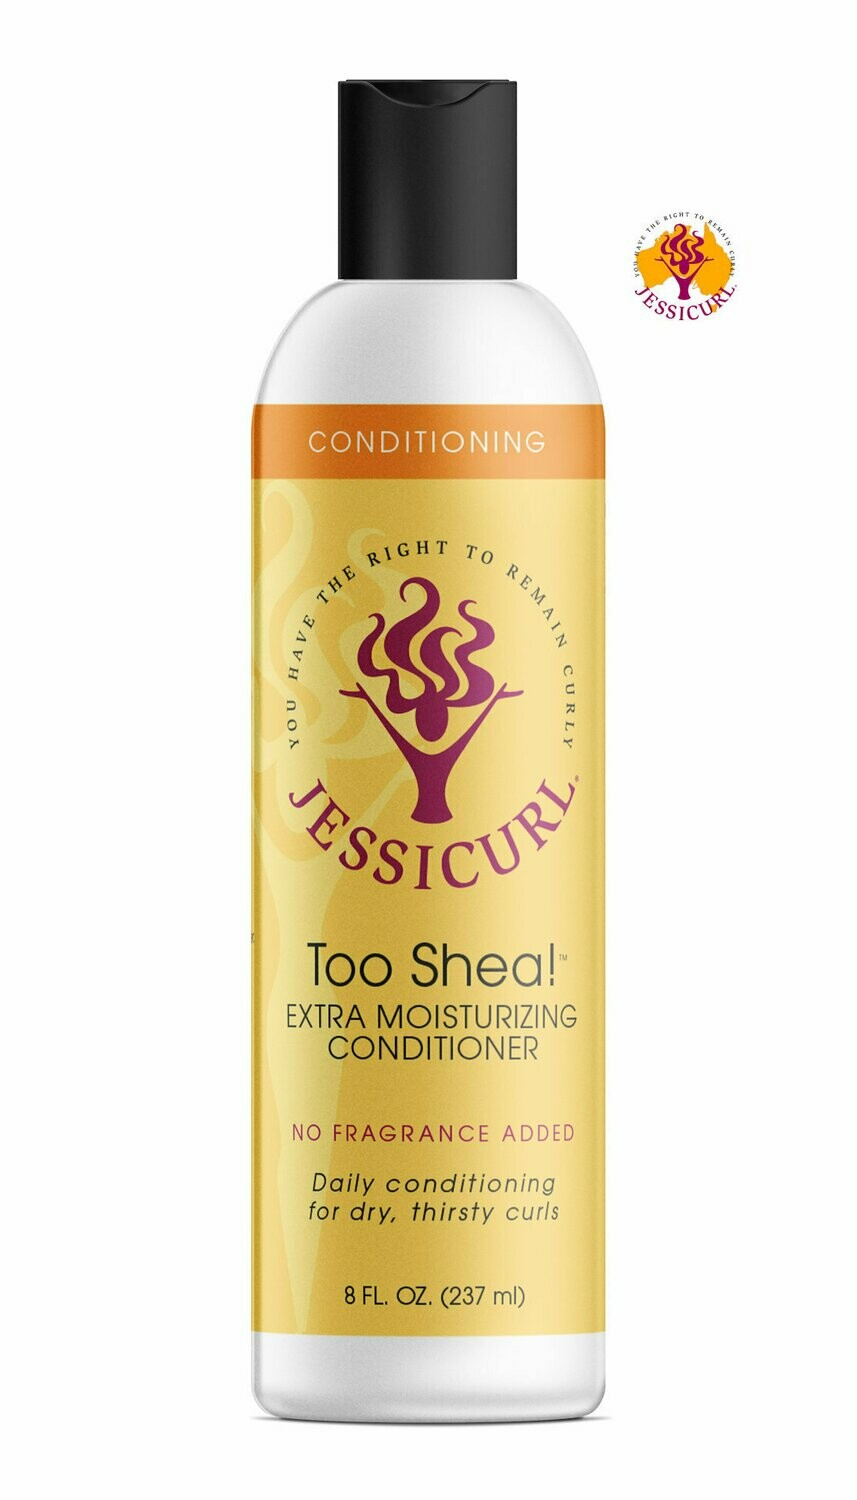 Jessicurl Too Shea! Extra Moisturising Conditioner 237ml No Fragrance Added